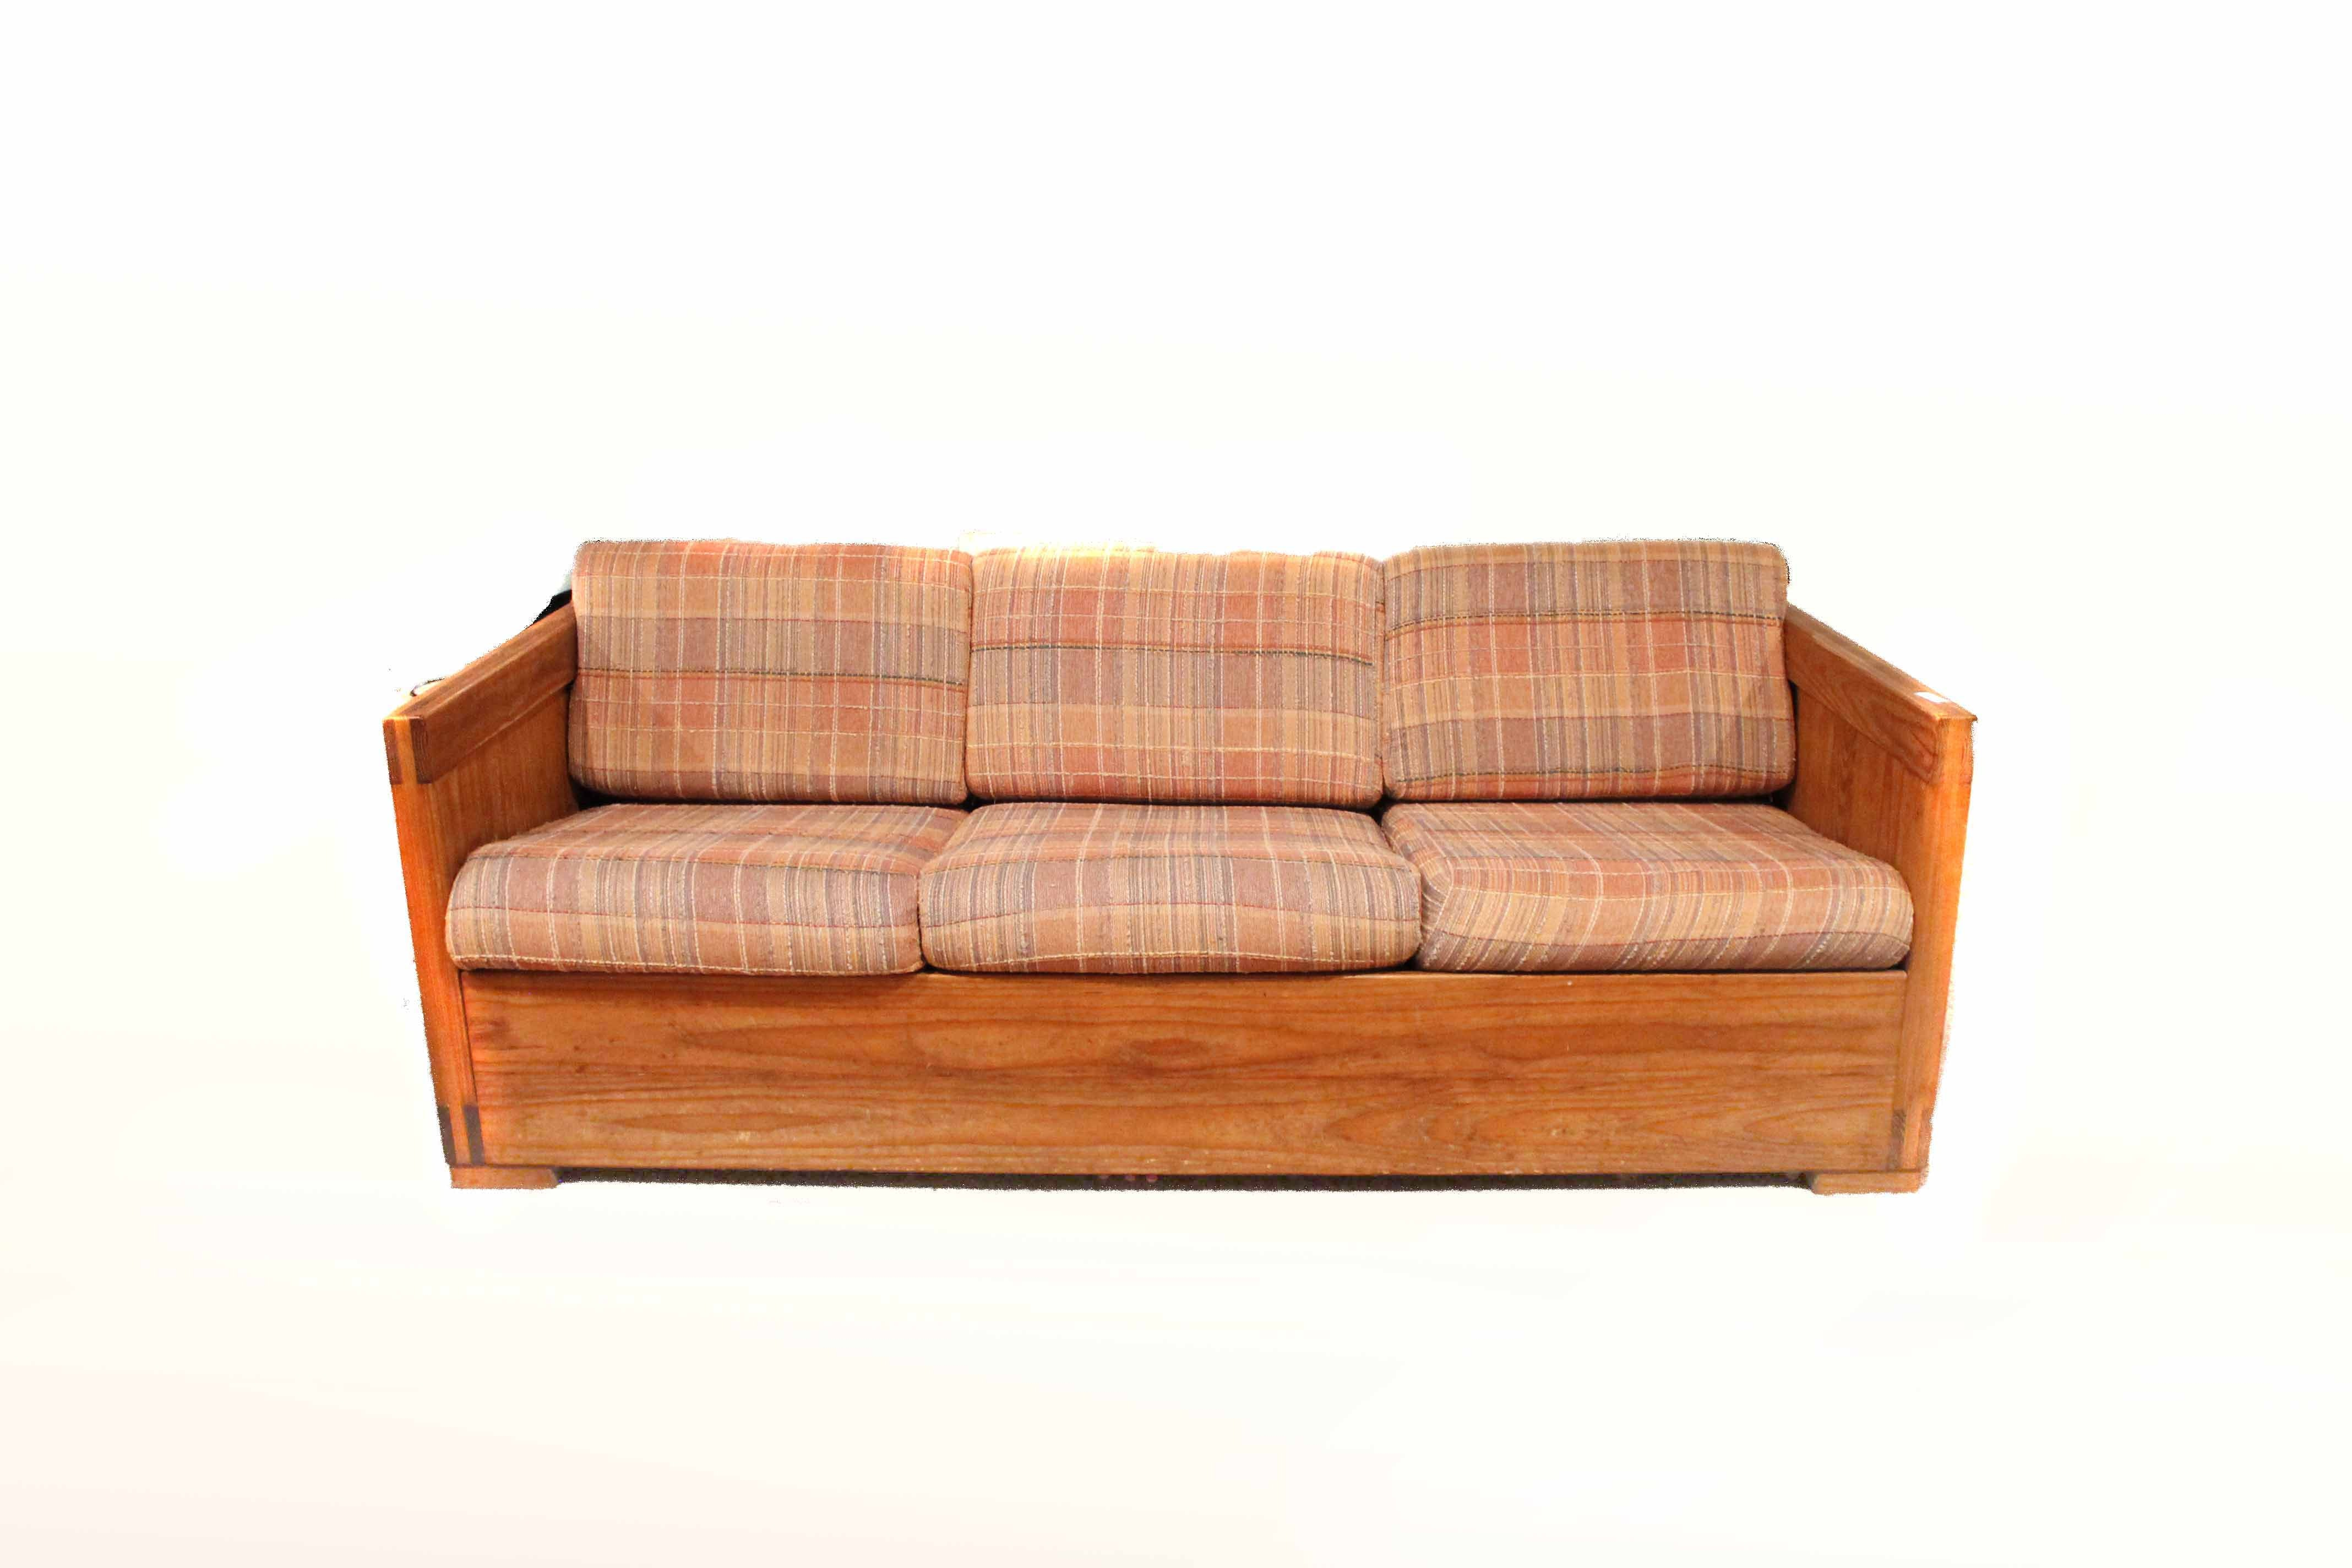 This End Up Sofa ...